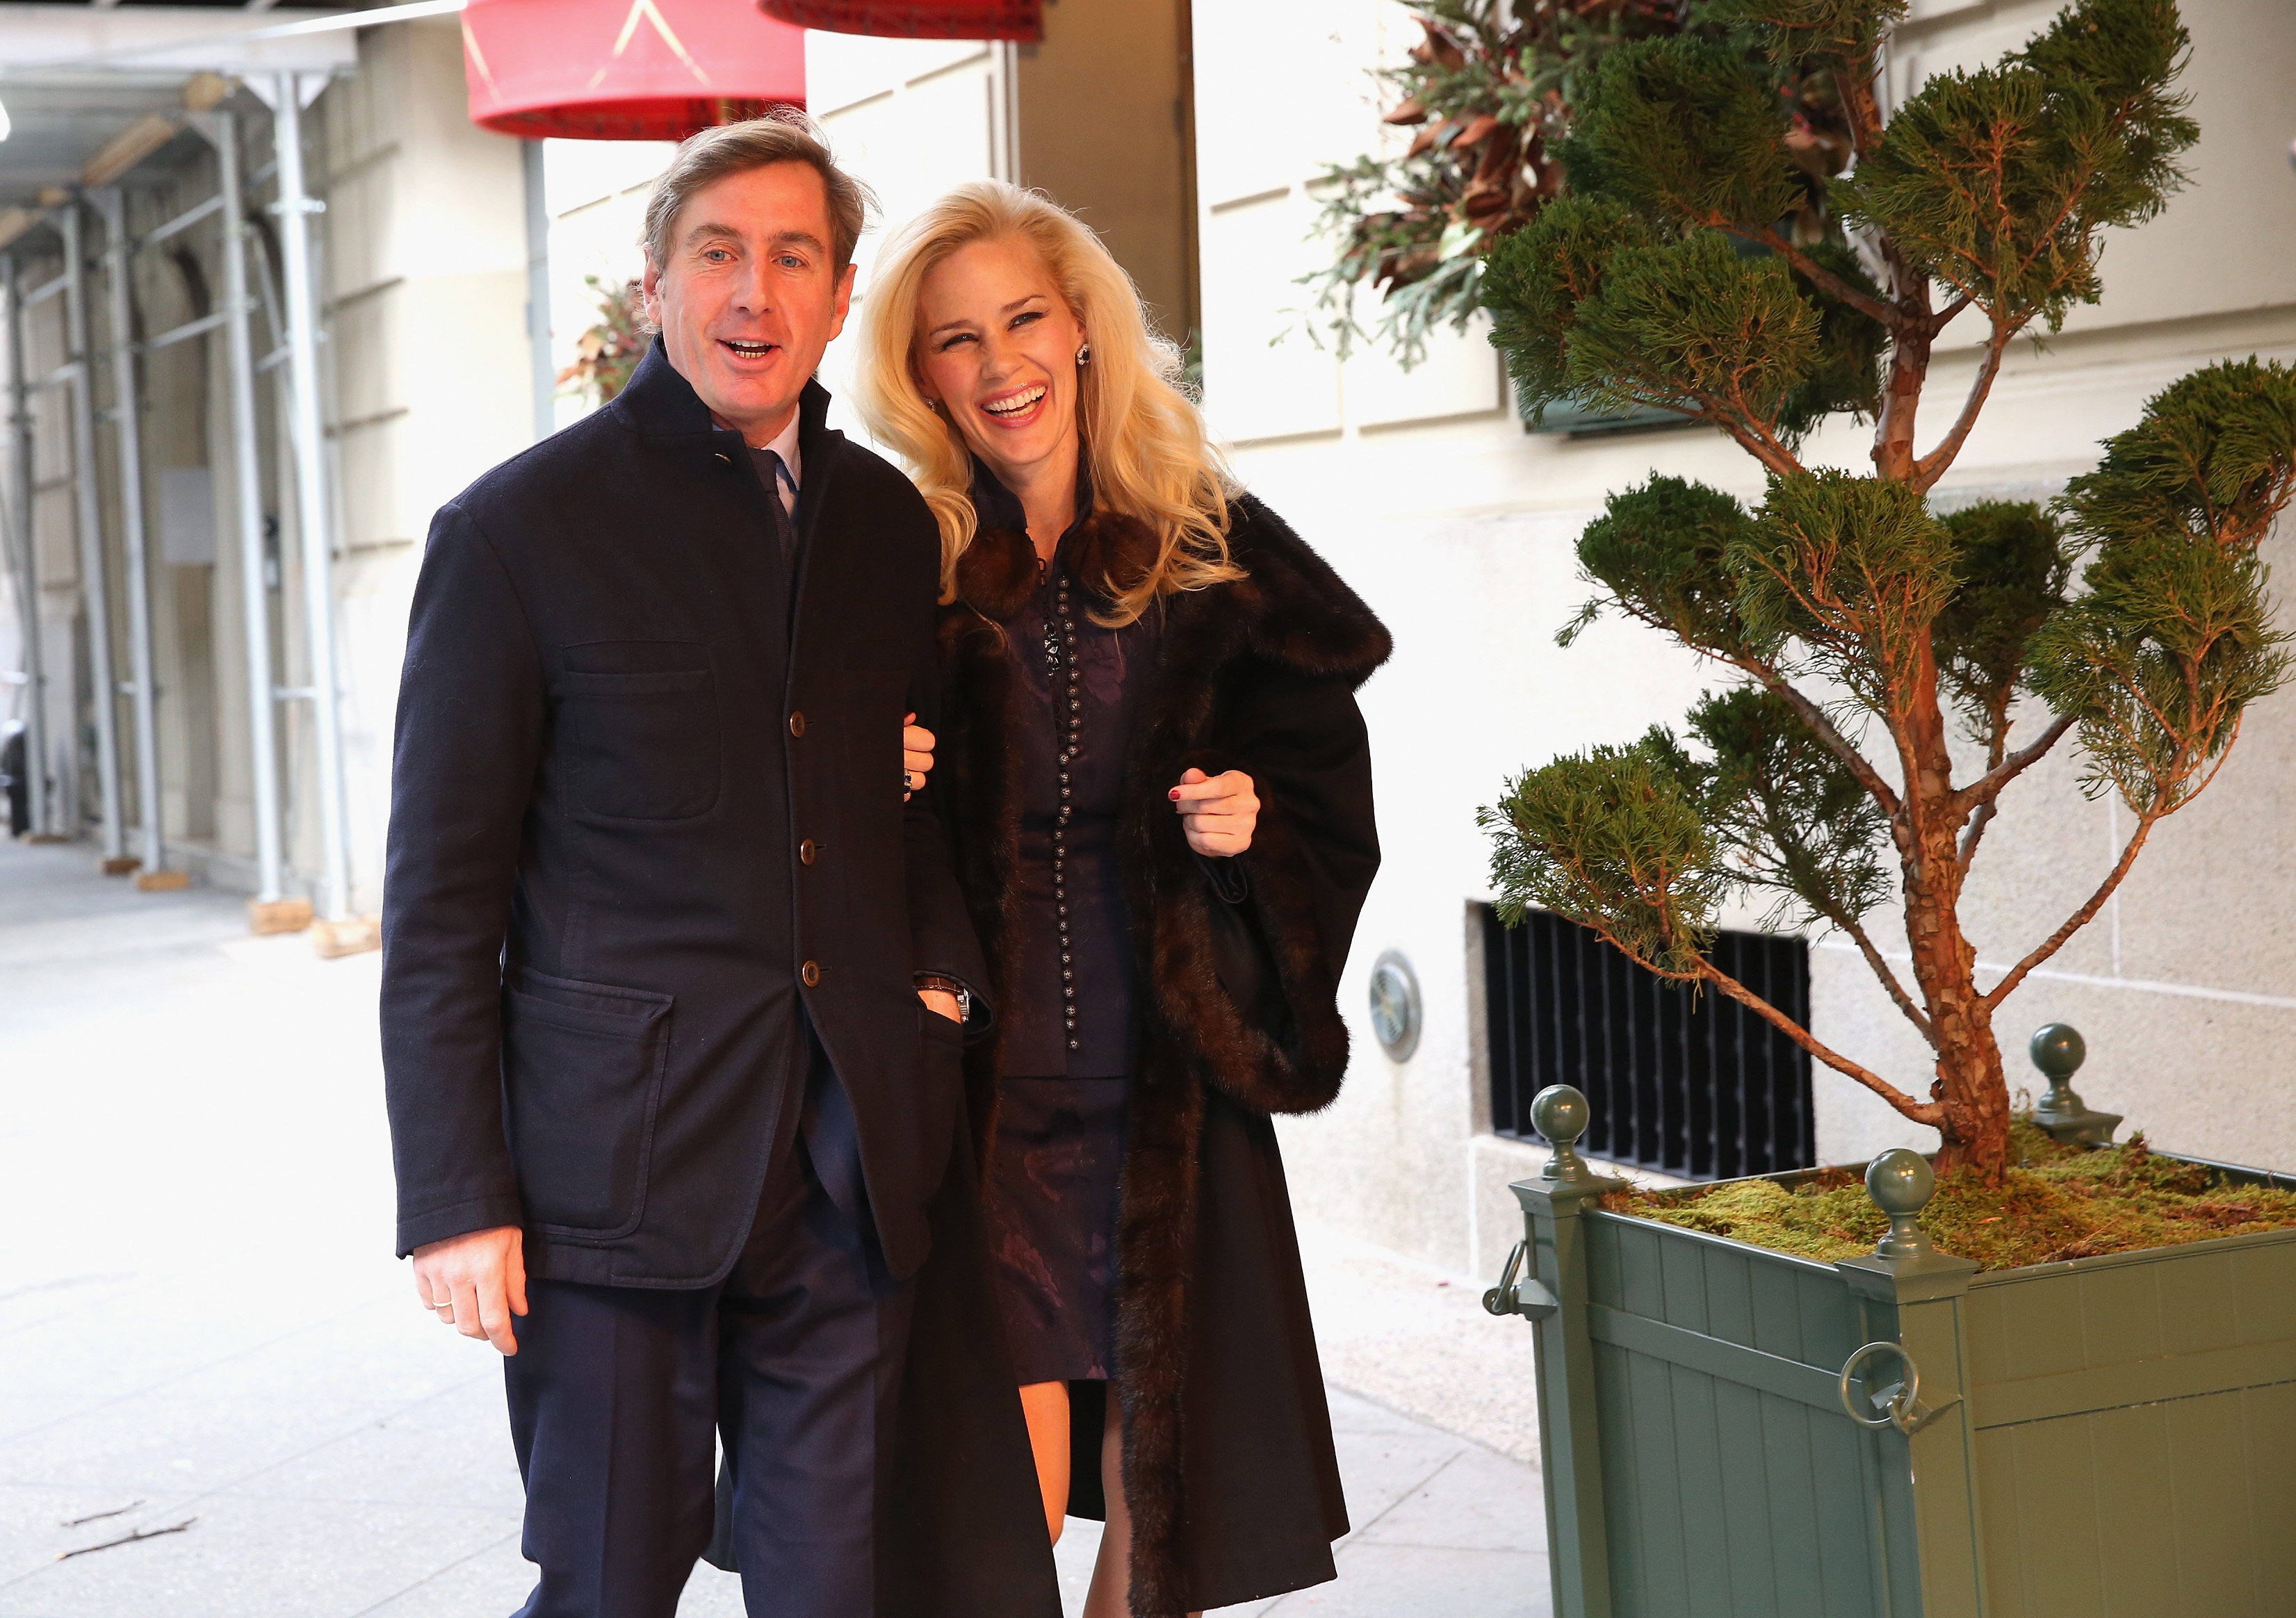 NEW YORK, NY - JANUARY 08: New York Socialite Michelle-Marie Heinemann (L) Hosts Luncheon For Prince Charles Henri Lobkowicz (R) At Plaza Athenee on January 8, 2016 in New York City. (Photo by Robin Marchant/Getty Images for Old Fashioned Mom Magazine)